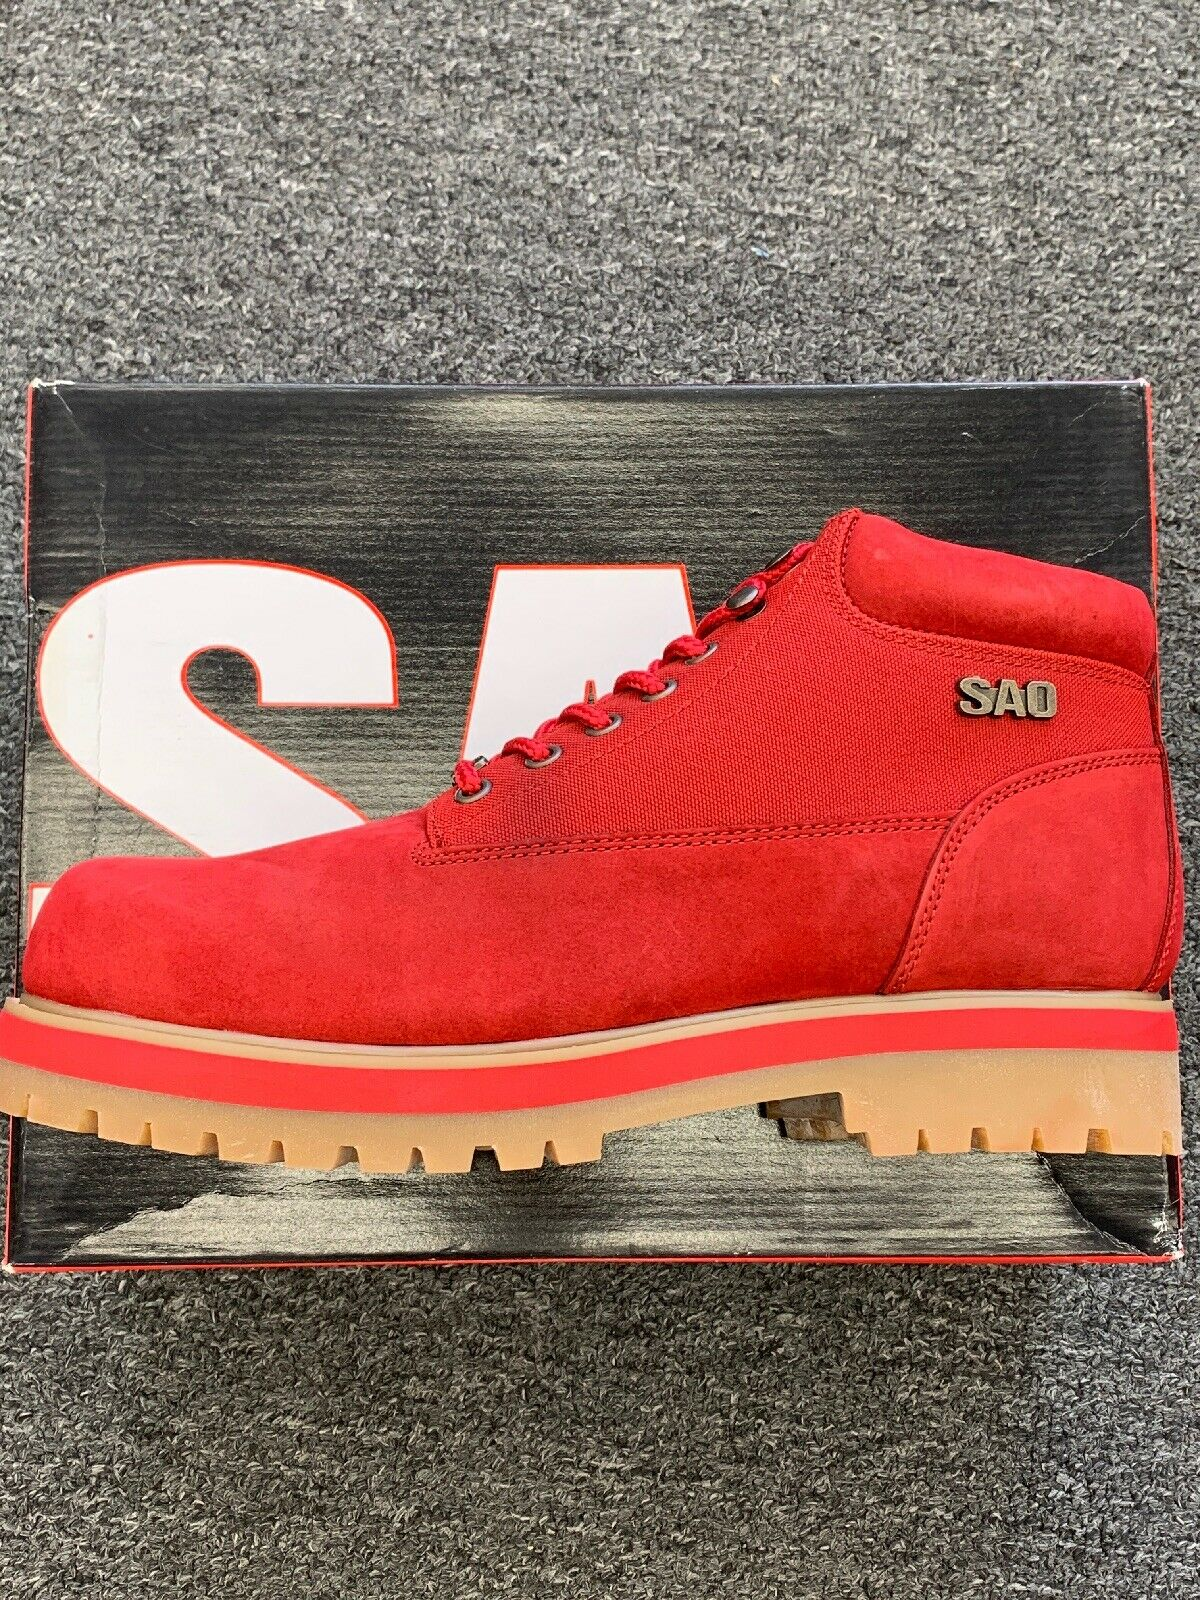 Mens SAO Red Boots Red Rider 63036 Size 8.5 M NWB VTG